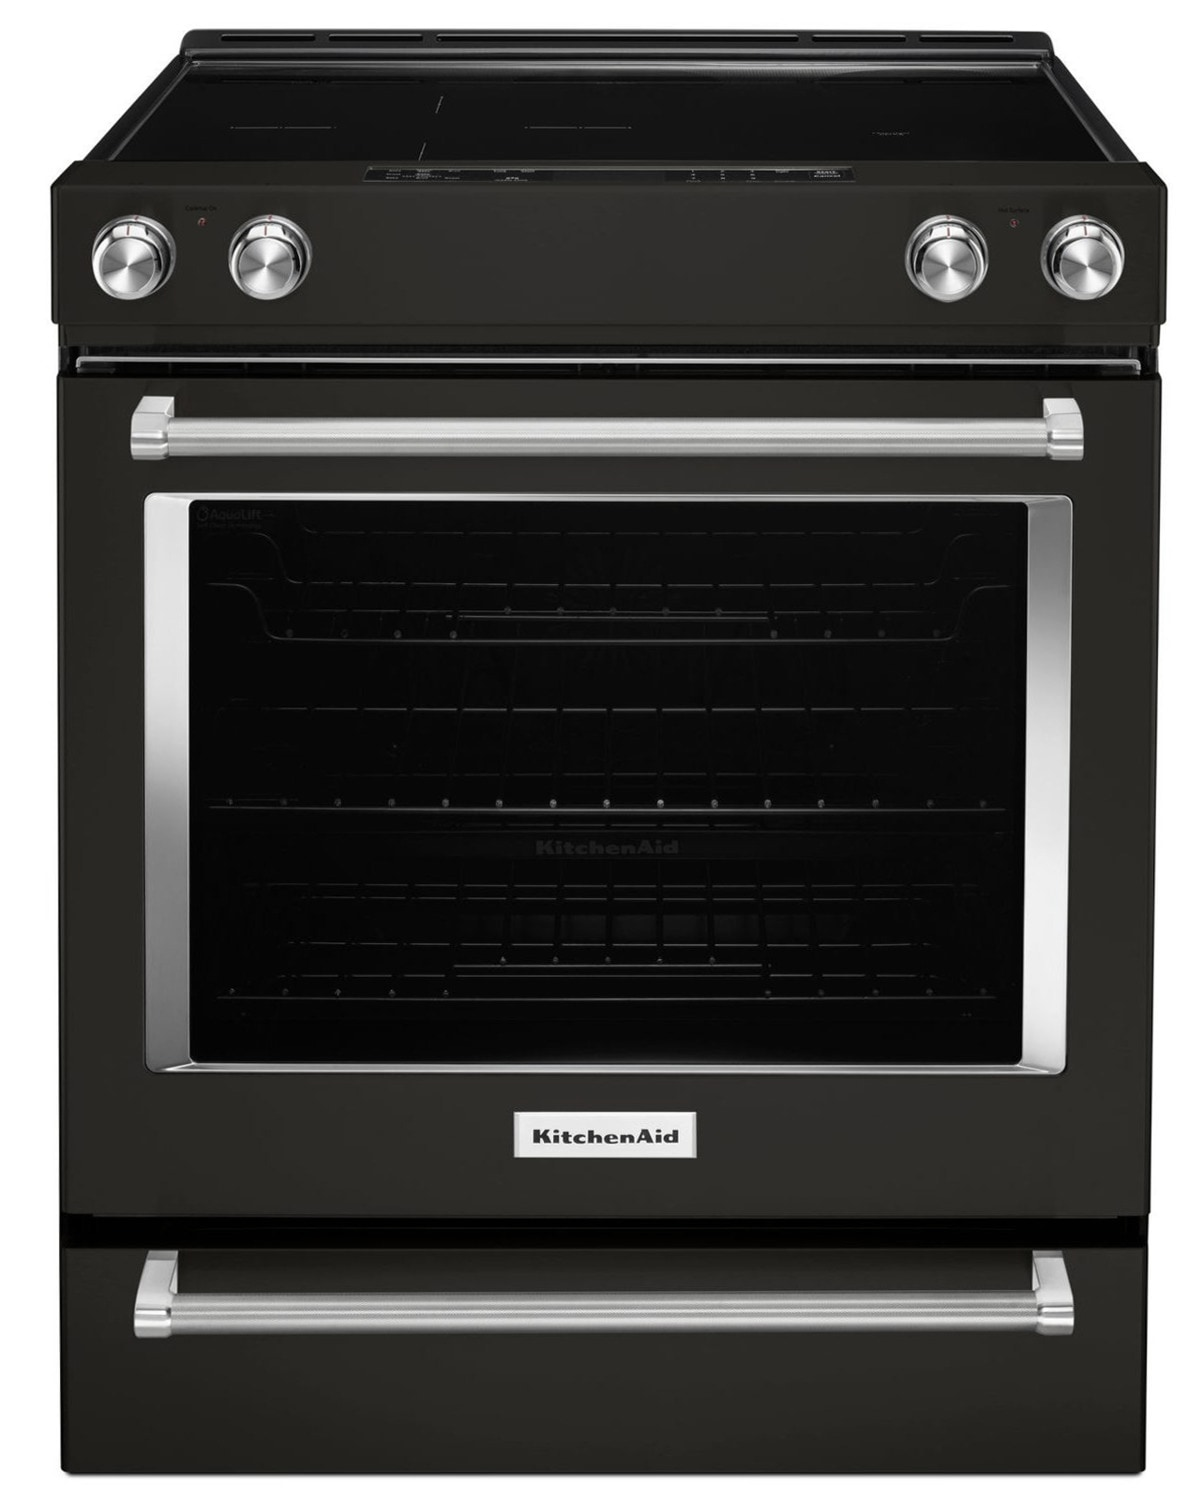 KitchenAid Black Stainless Steel Slide-In Electric Convection Range (6.4 Cu. Ft.) - YKSEG700EBS